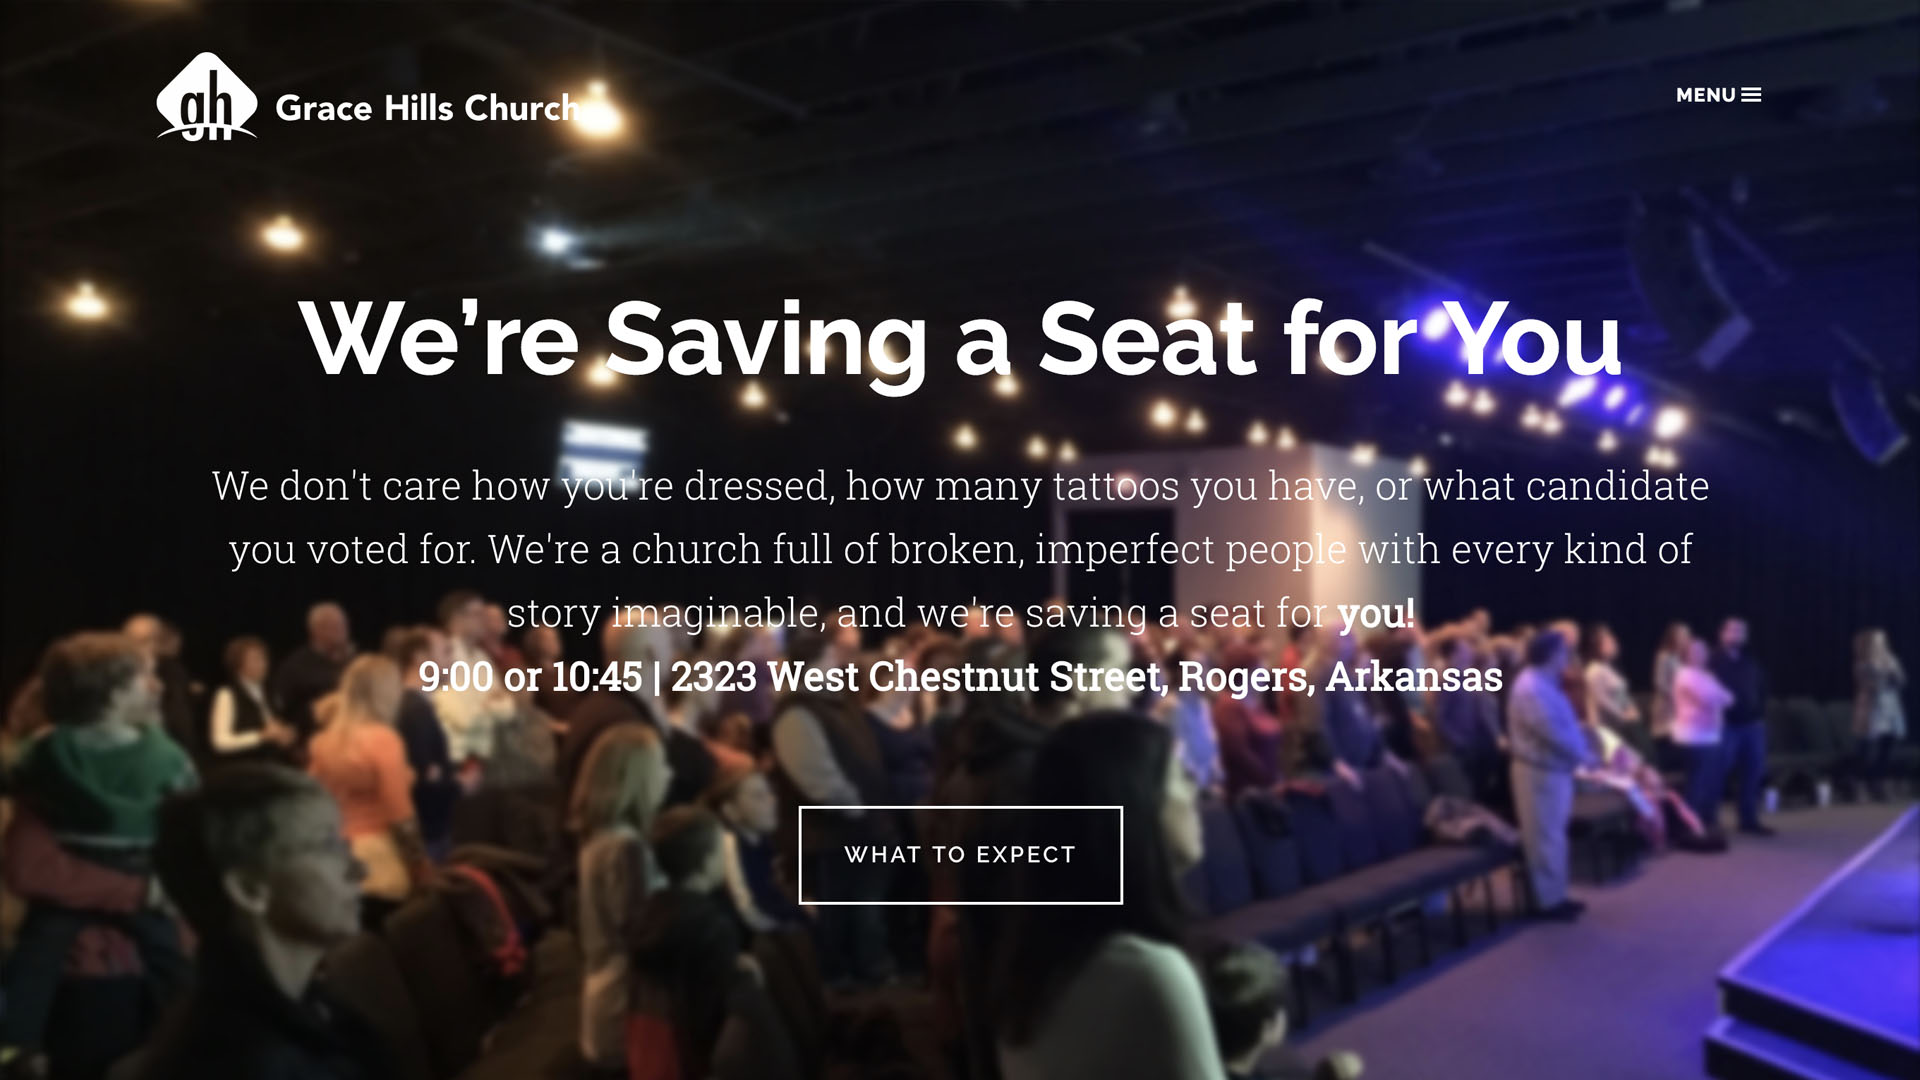 Grace Hills Church - http://gracehillschurch.com/